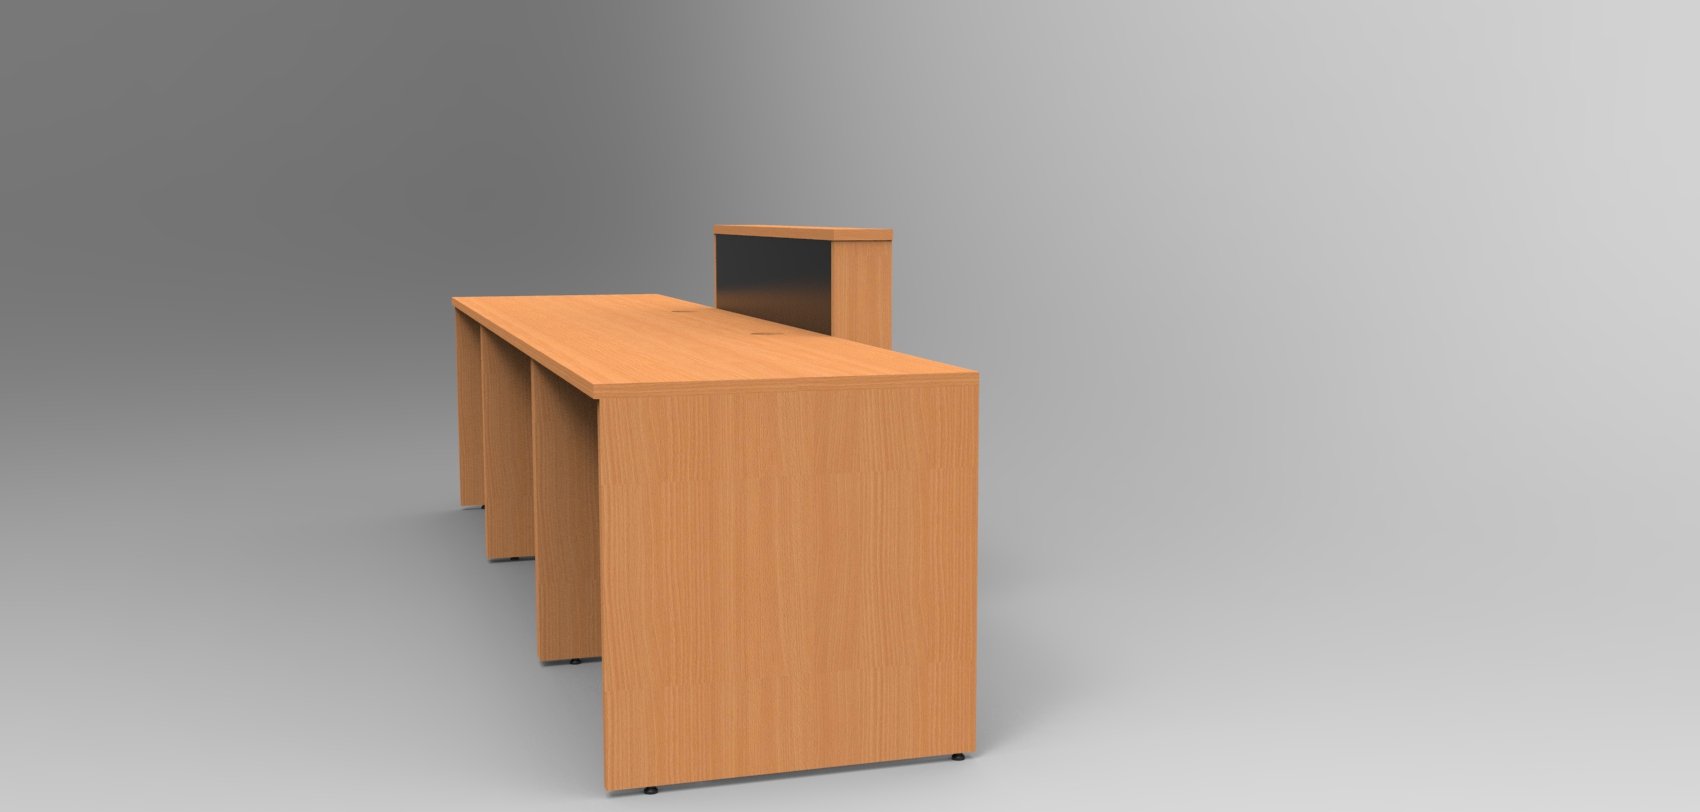 Image 12UC - DDA Union reception desk finished in Beech and Black